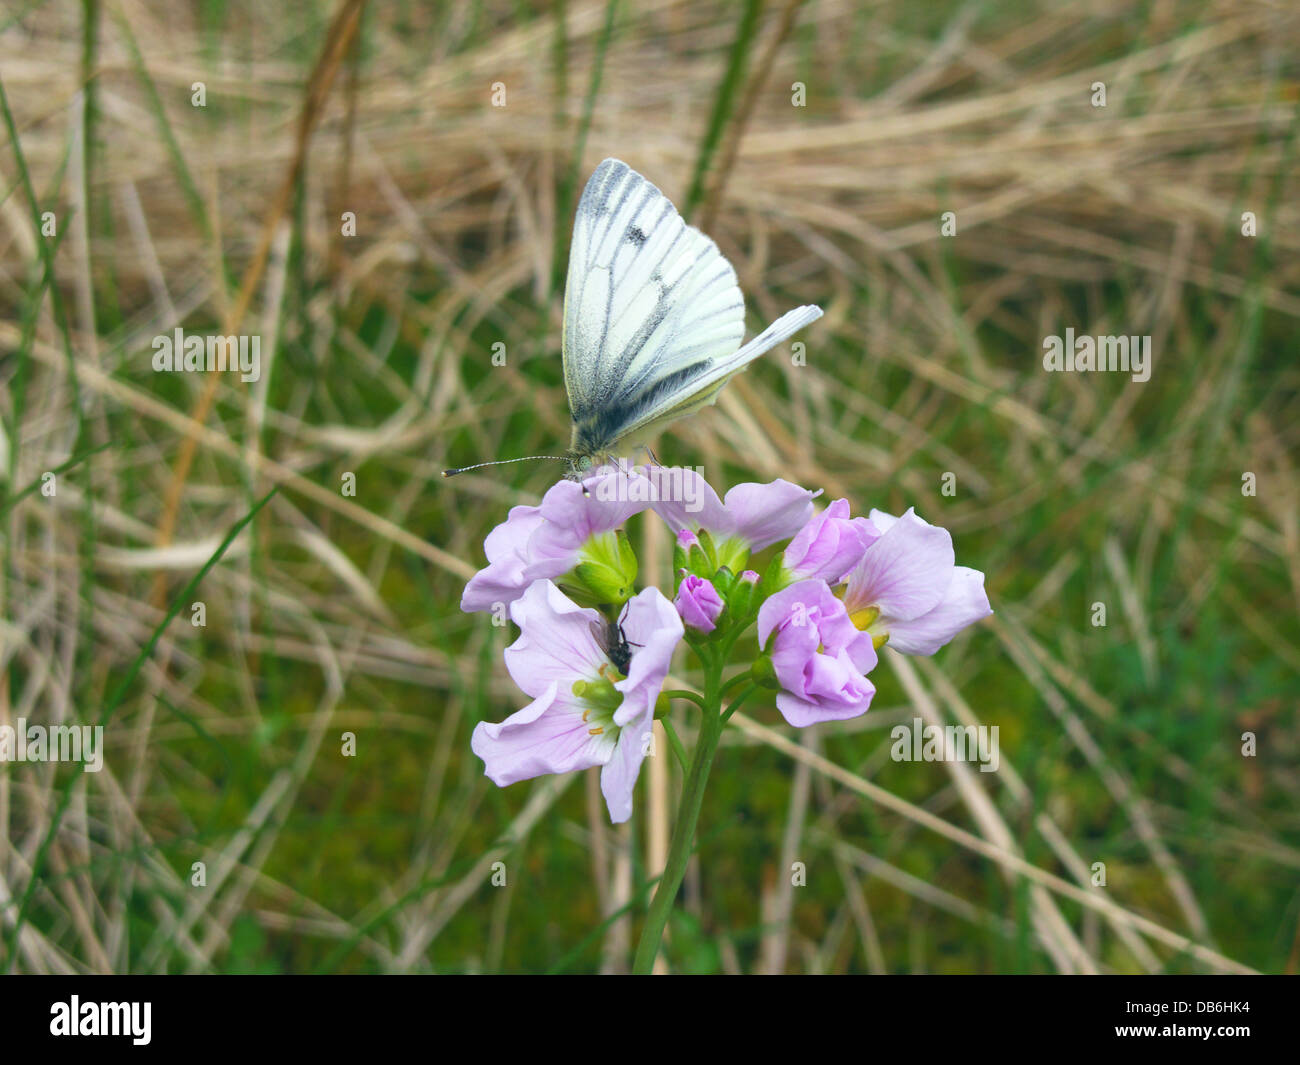 Small White Butterfly ( Artogeia rapae ) Feeding On Nectar A Lady's Smock/ Cuckoo Flower ( Caradmine pratensis - Stock Image